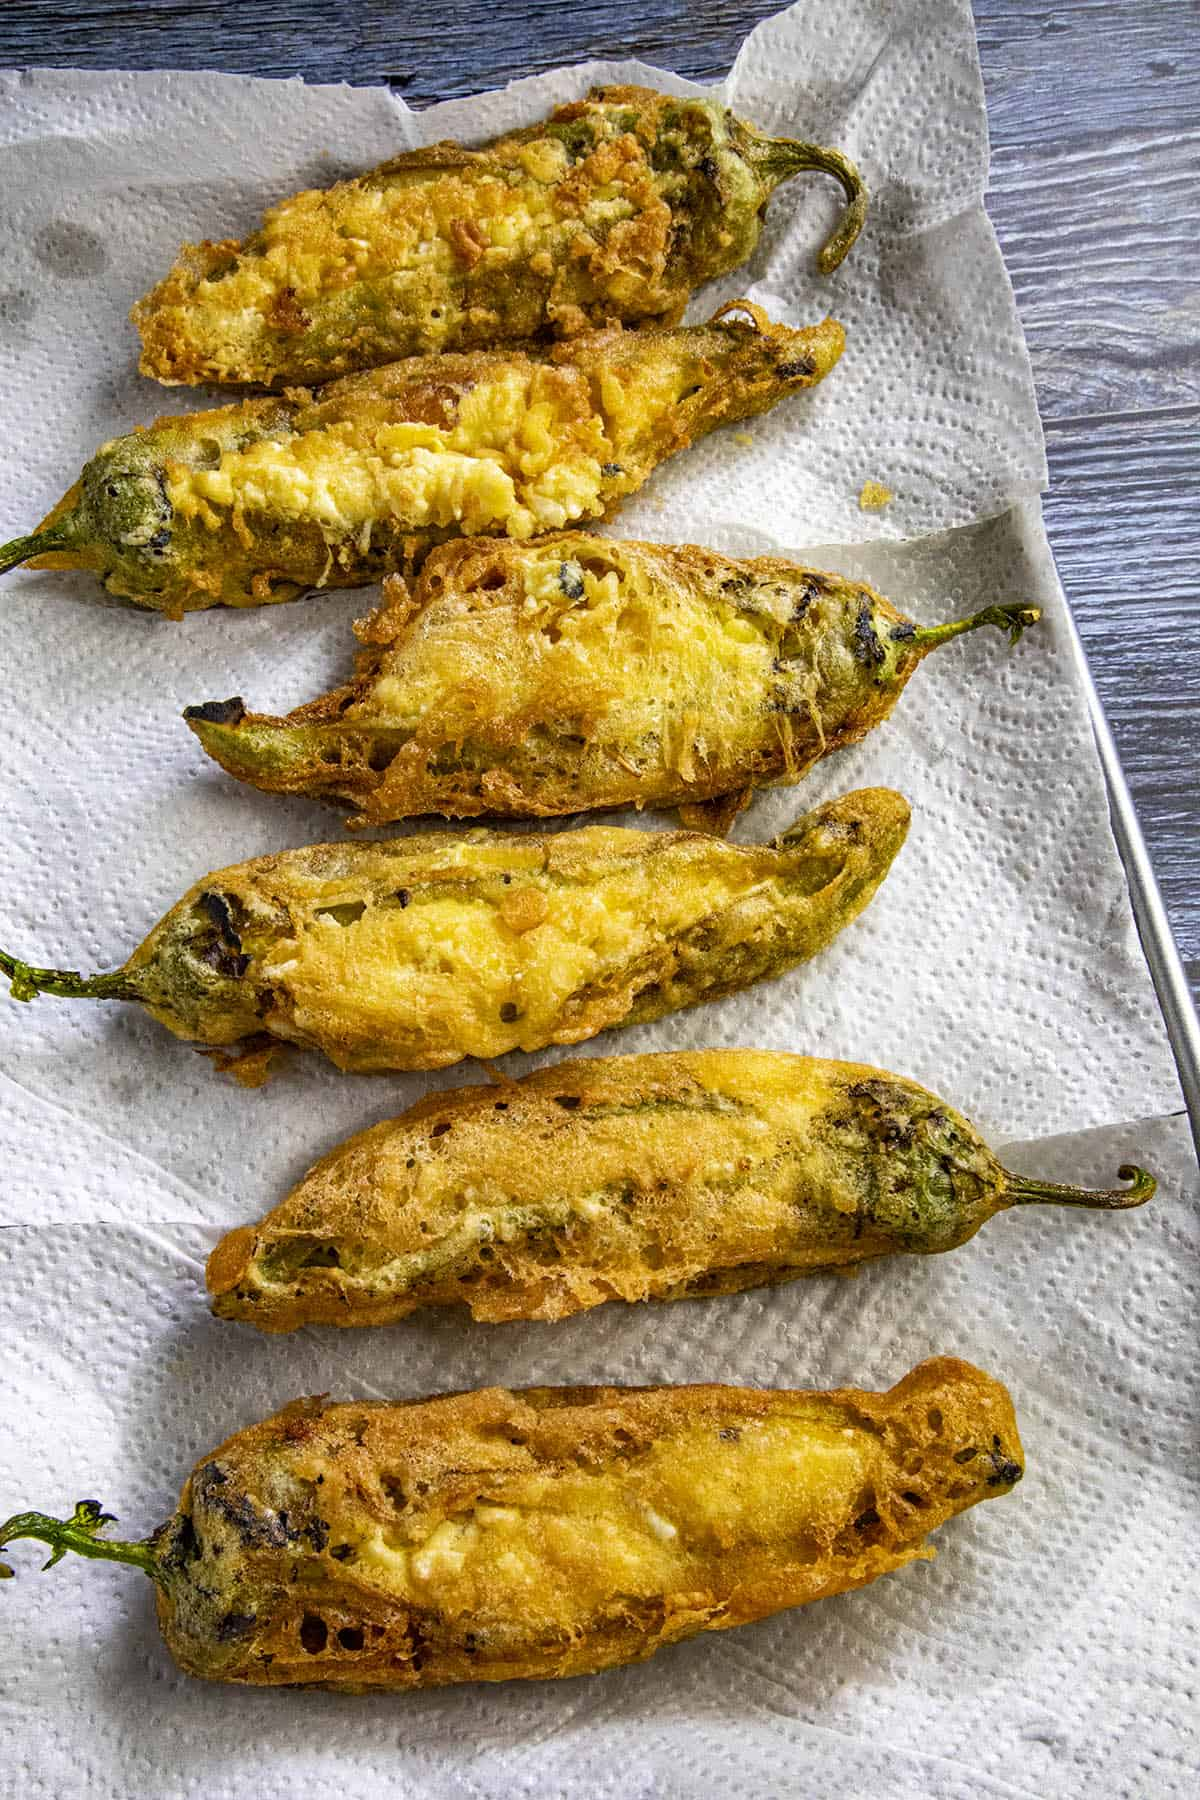 Chiles rellenos just out of the fryer, draining on paper towels